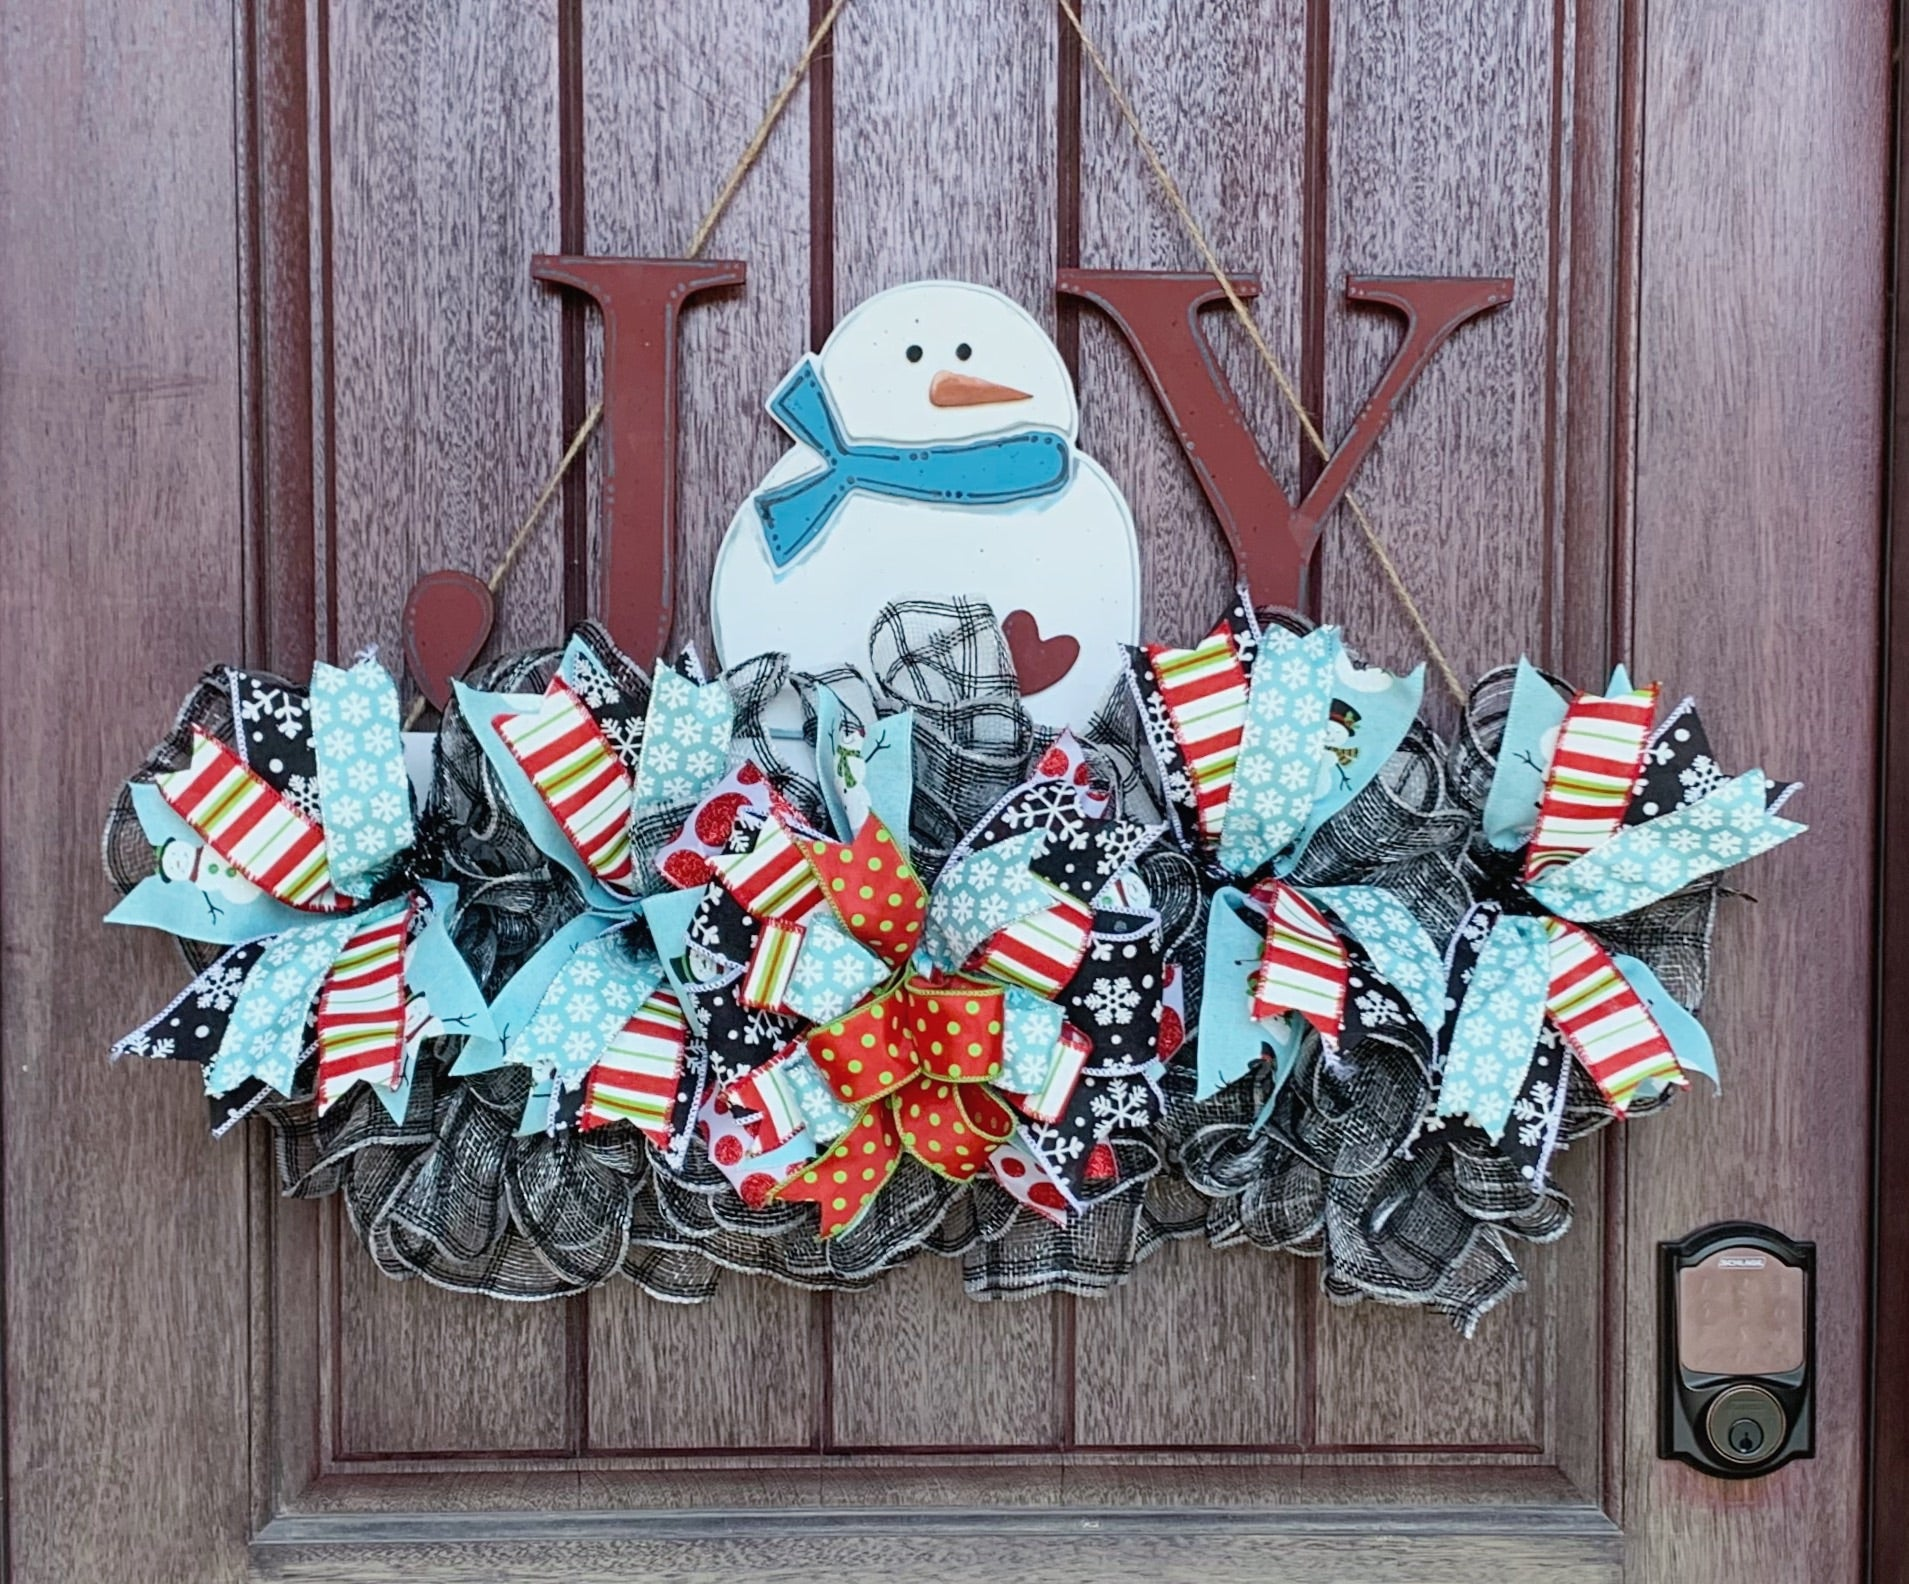 Snowman joy wreath rail, Snowman Wreath, Christmas wreath rail, Front door decor, Christmas wreath